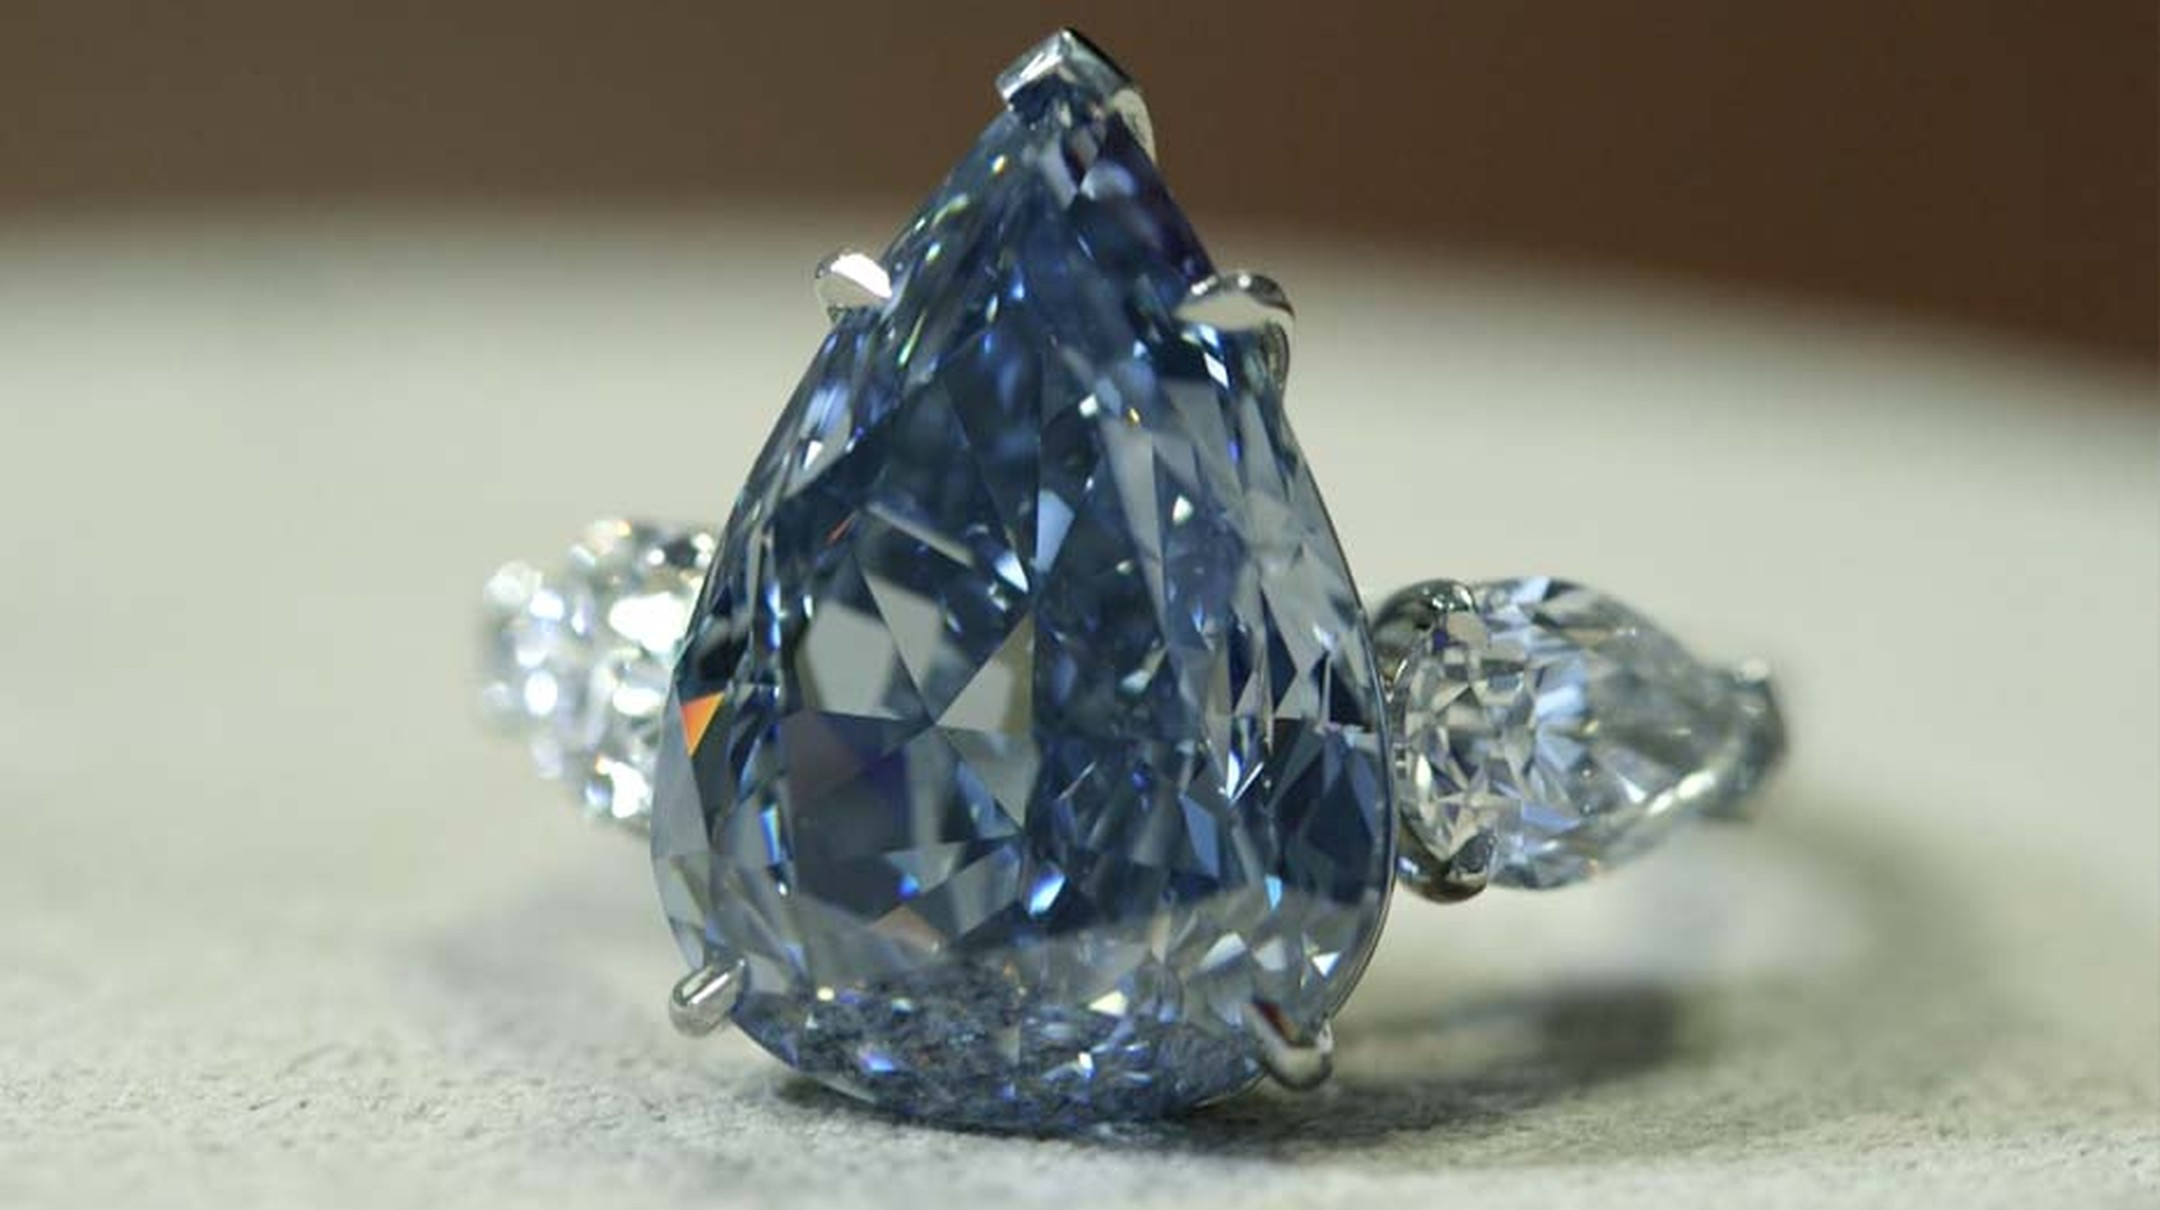 'The Blue' diamond - at 13.22ct the world's largest flawless Vivid blue diamond - leads Christie's Magnificent Jewels auction in Geneva on 14 May 2014